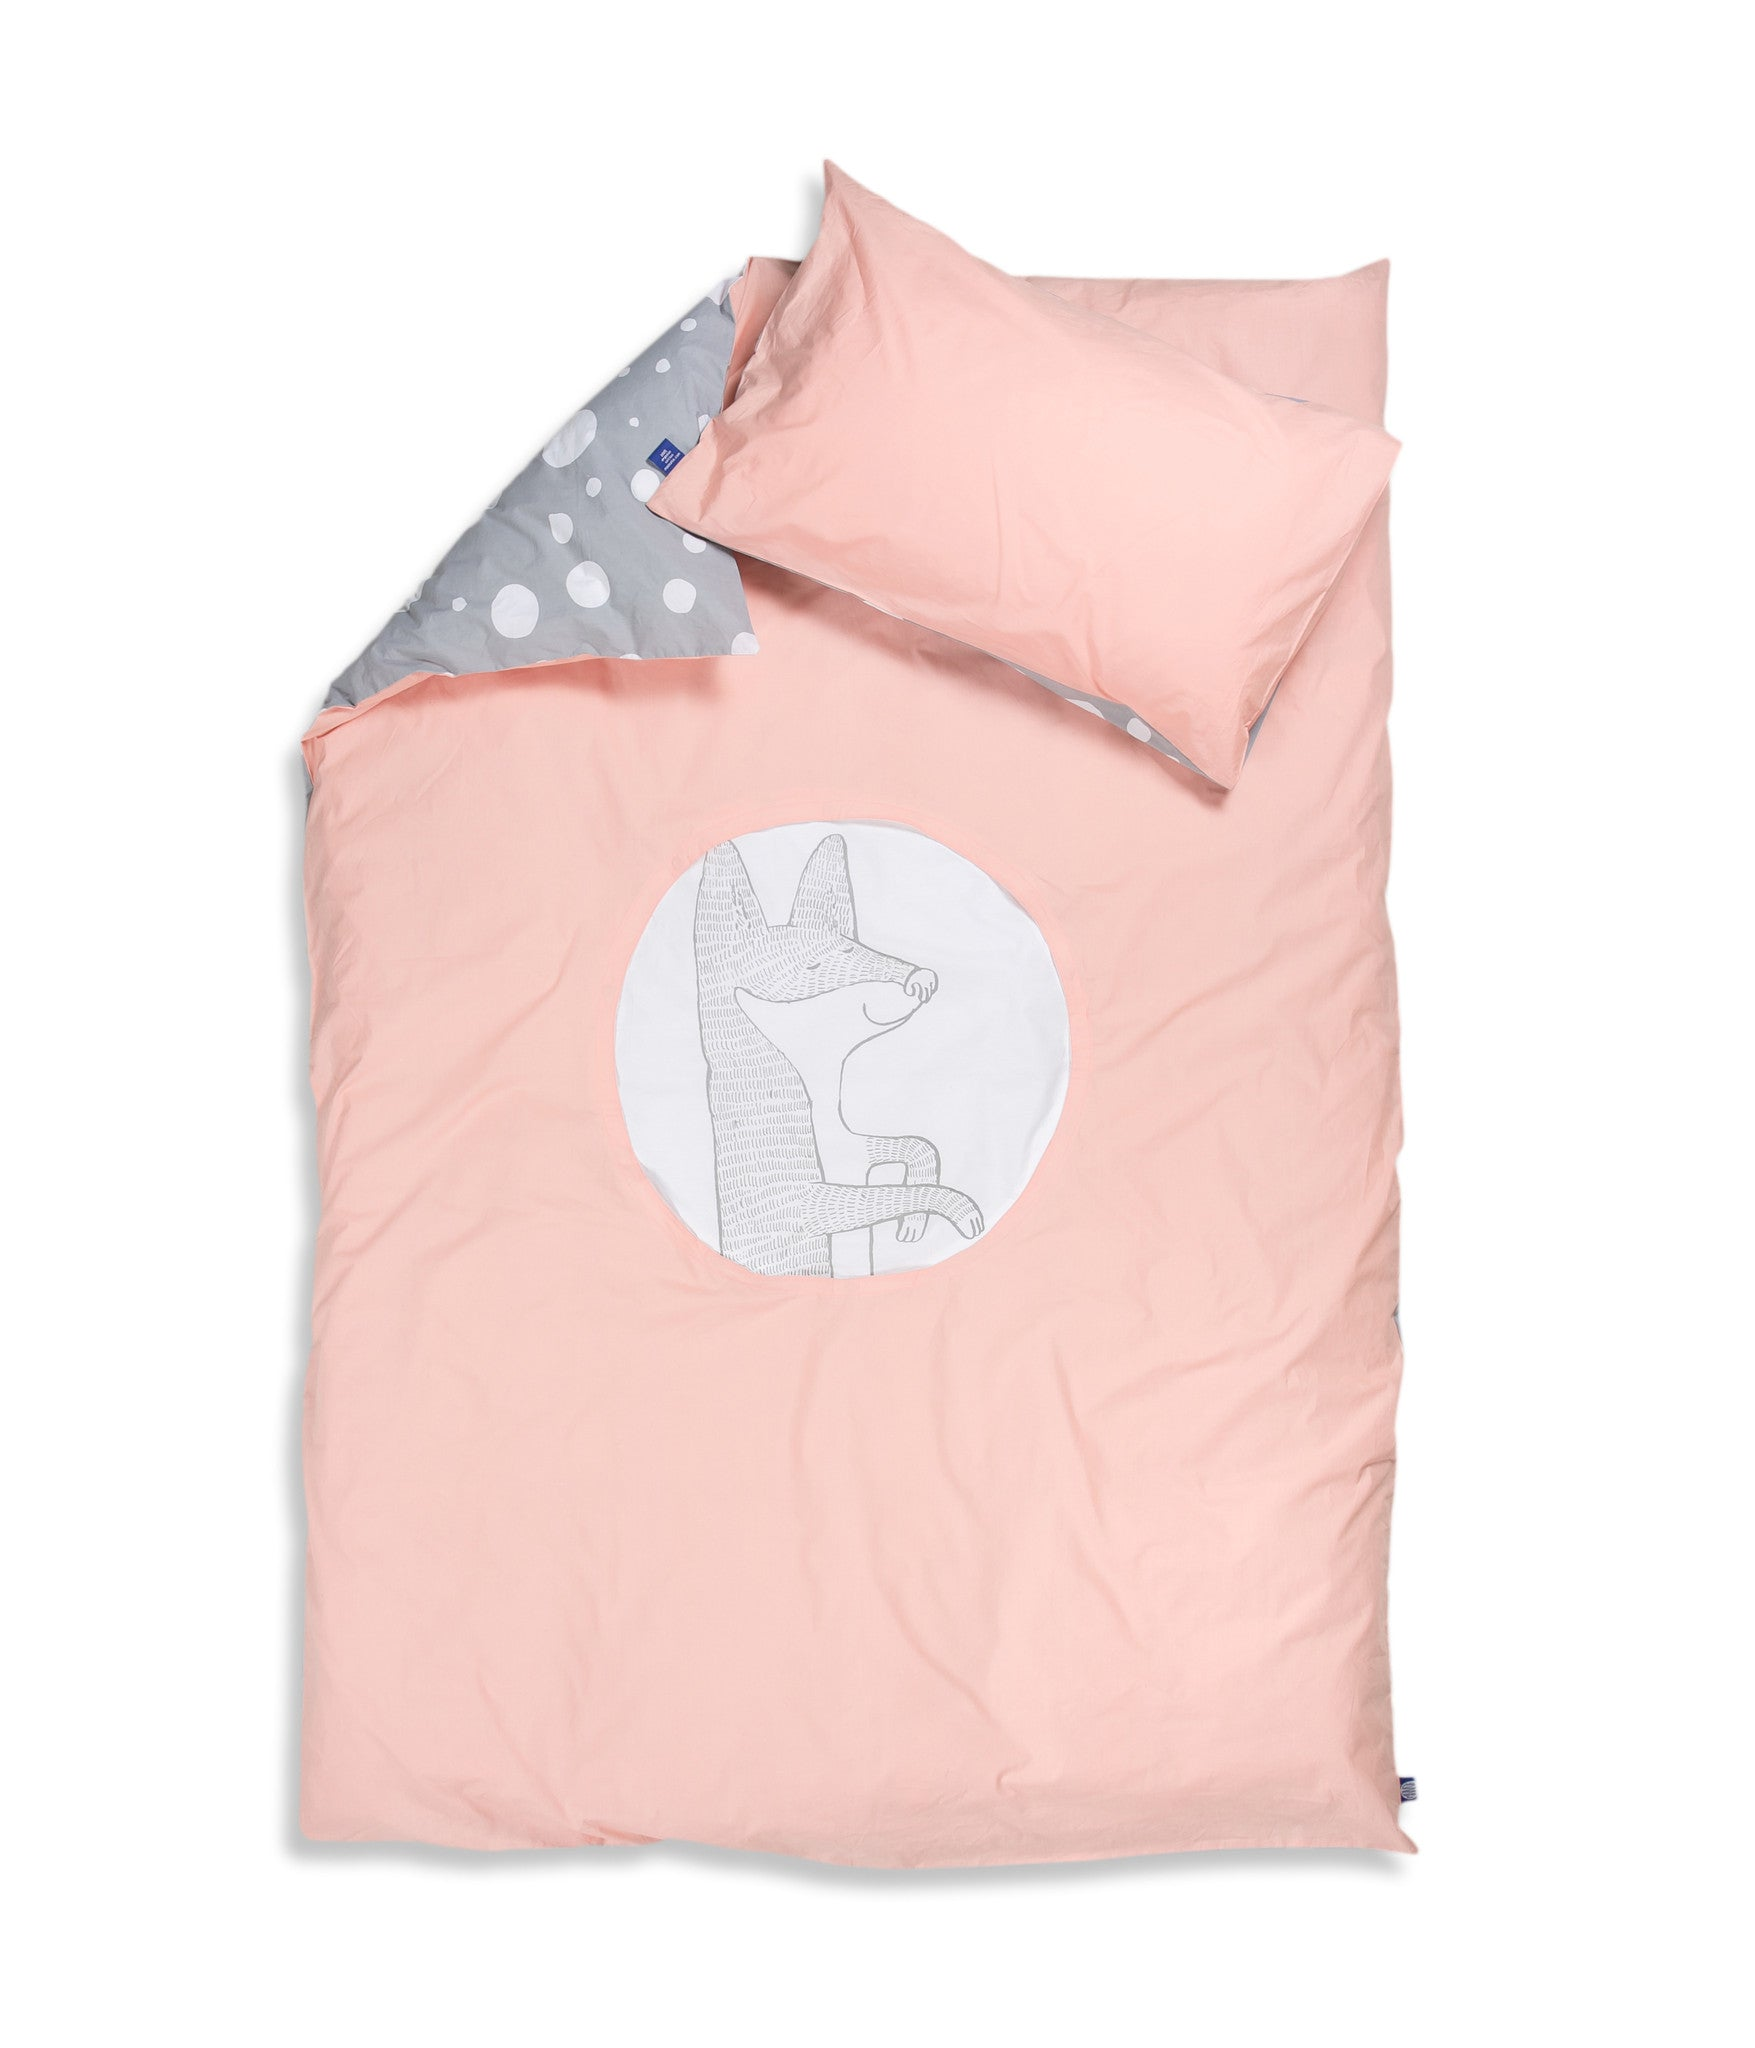 Organic cotton single bed set. Kids bedding. Pink pillow case and pink duvet cover with fox. Dotted pattern bed linen. Customised bedding.